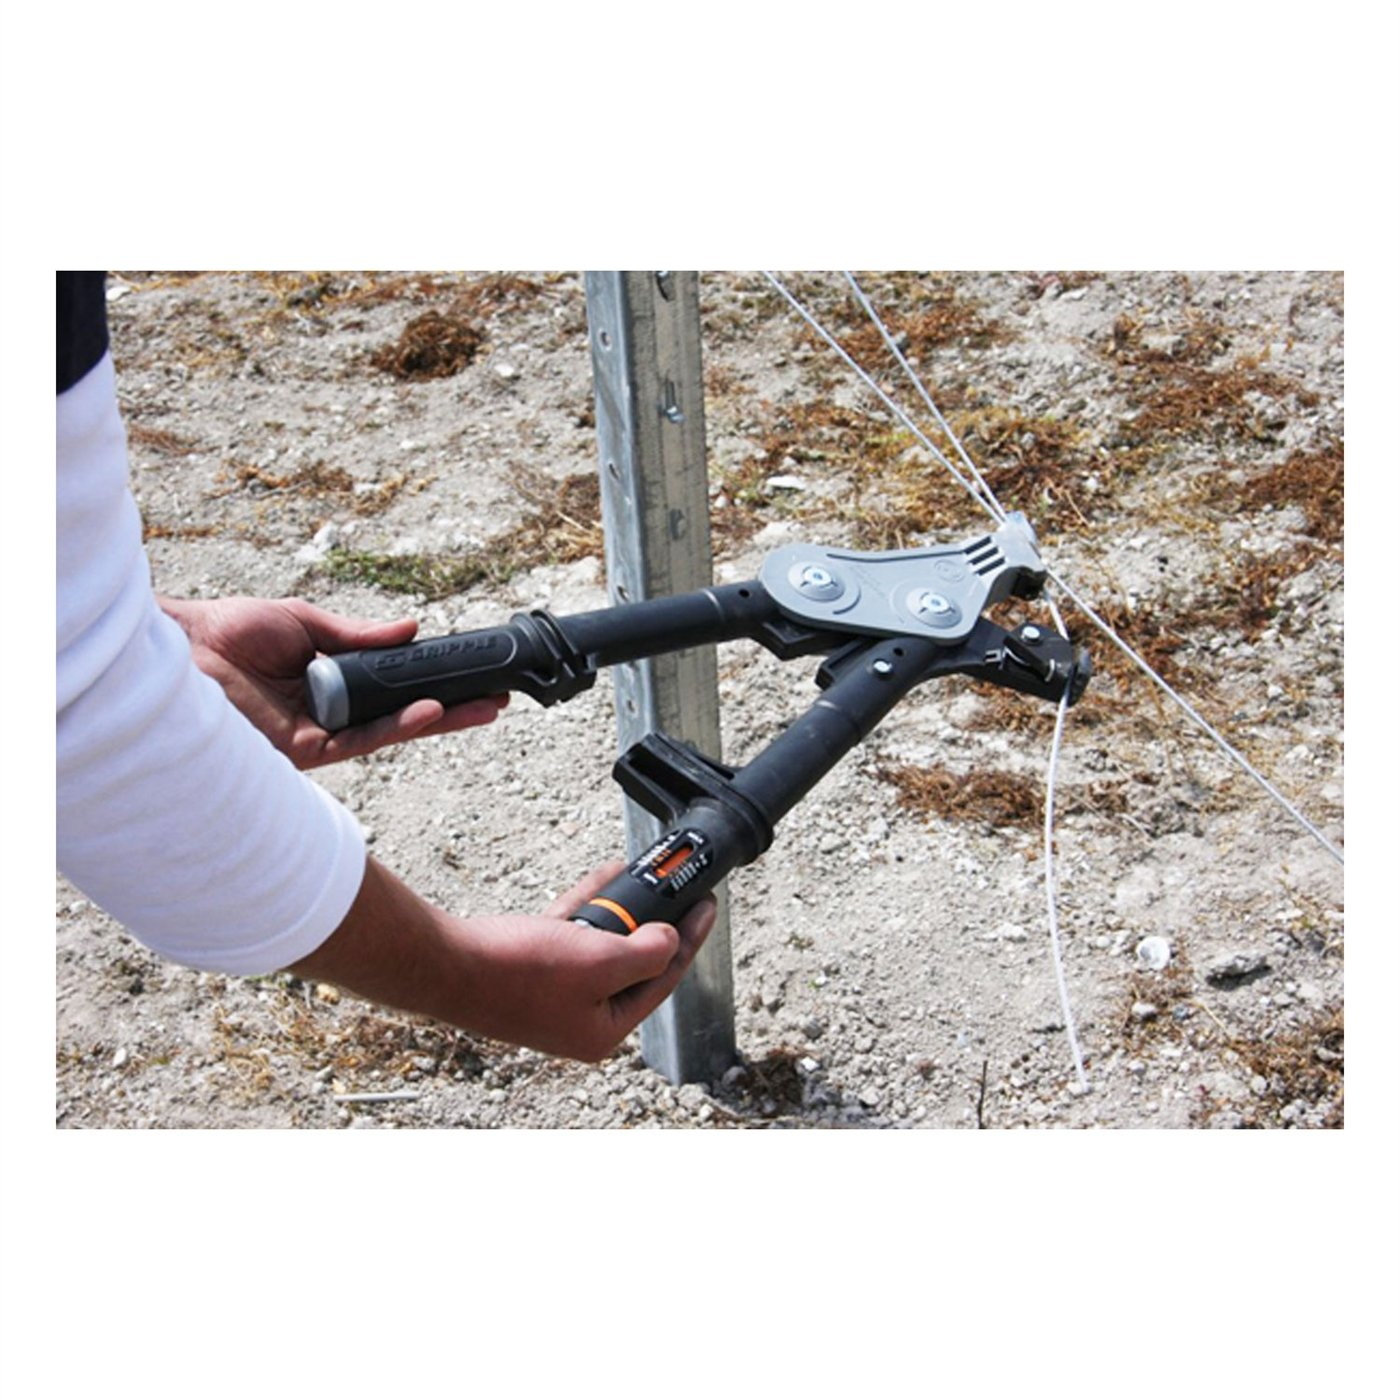 Gripple Torq Wire Tensioning Tool - Wire Strippers - Amazon.com